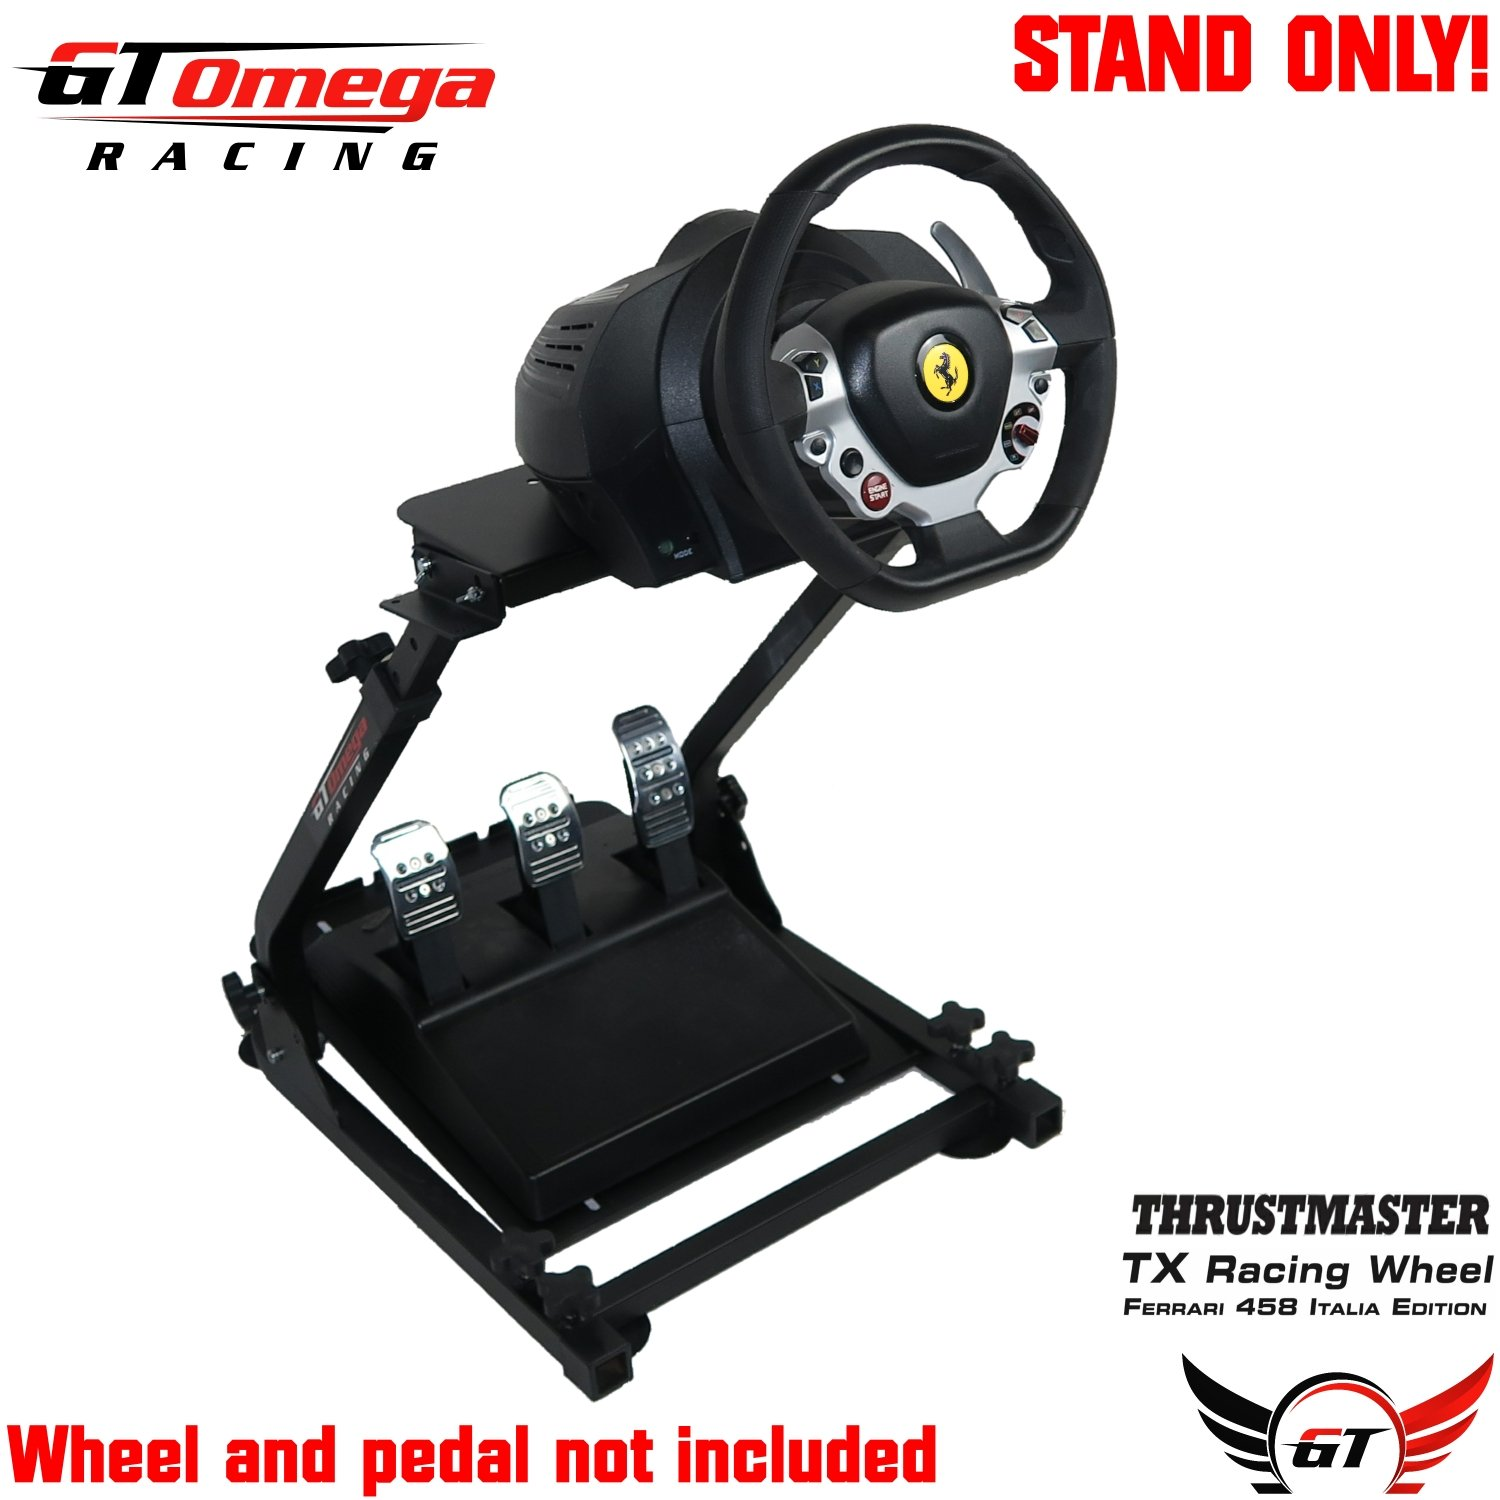 b4a6e3d8f19 ... GT Omega Steering Racing Driving Wheel Stand for Sony PS3, ...